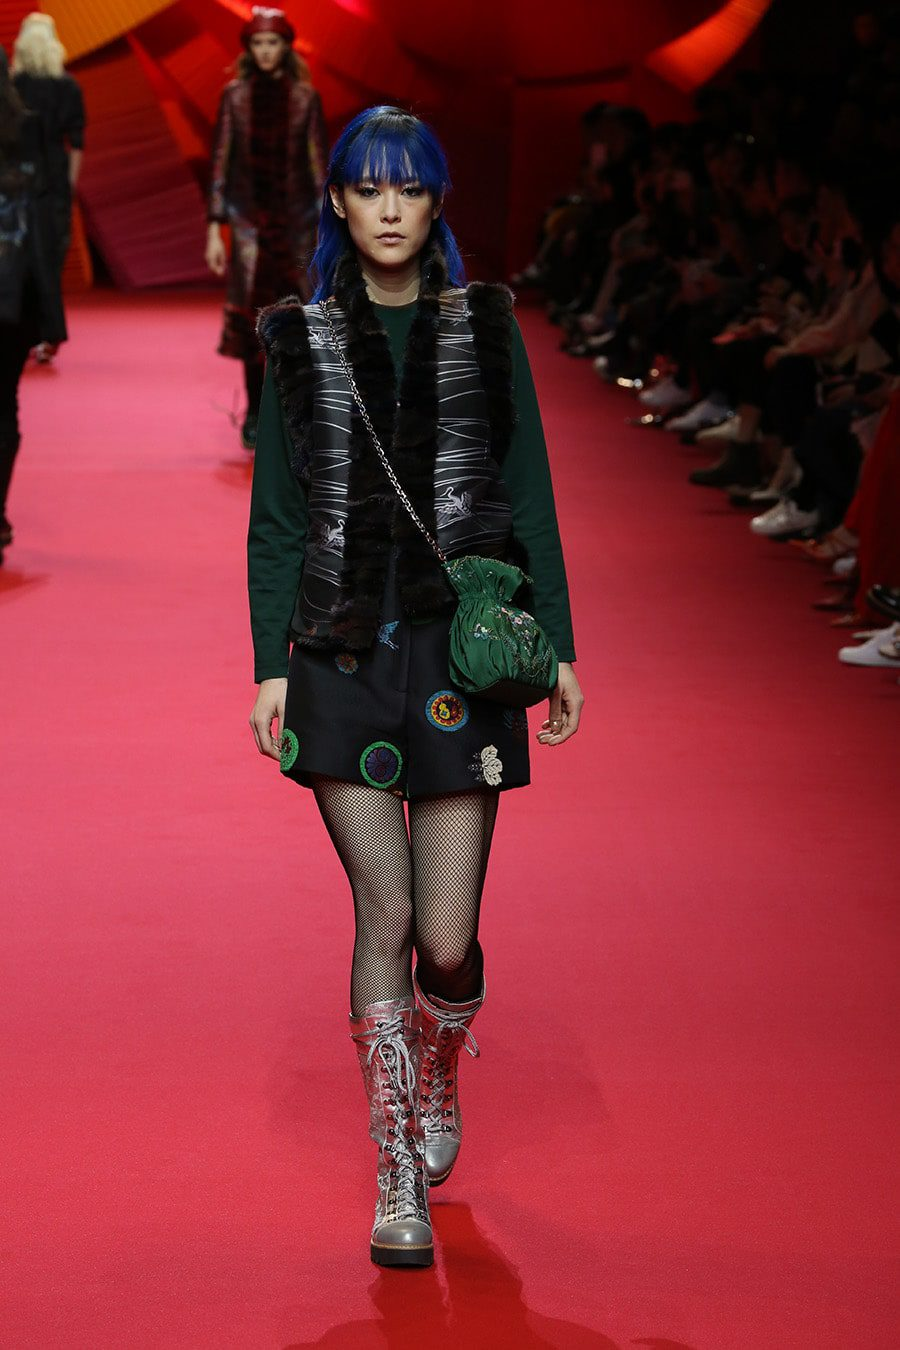 Shiatzy_chen_fall_winter_2017_2018_Paris_Fashion_Week_Runway_Magazine Shiatzy Chen Fall Winter 2017-2018